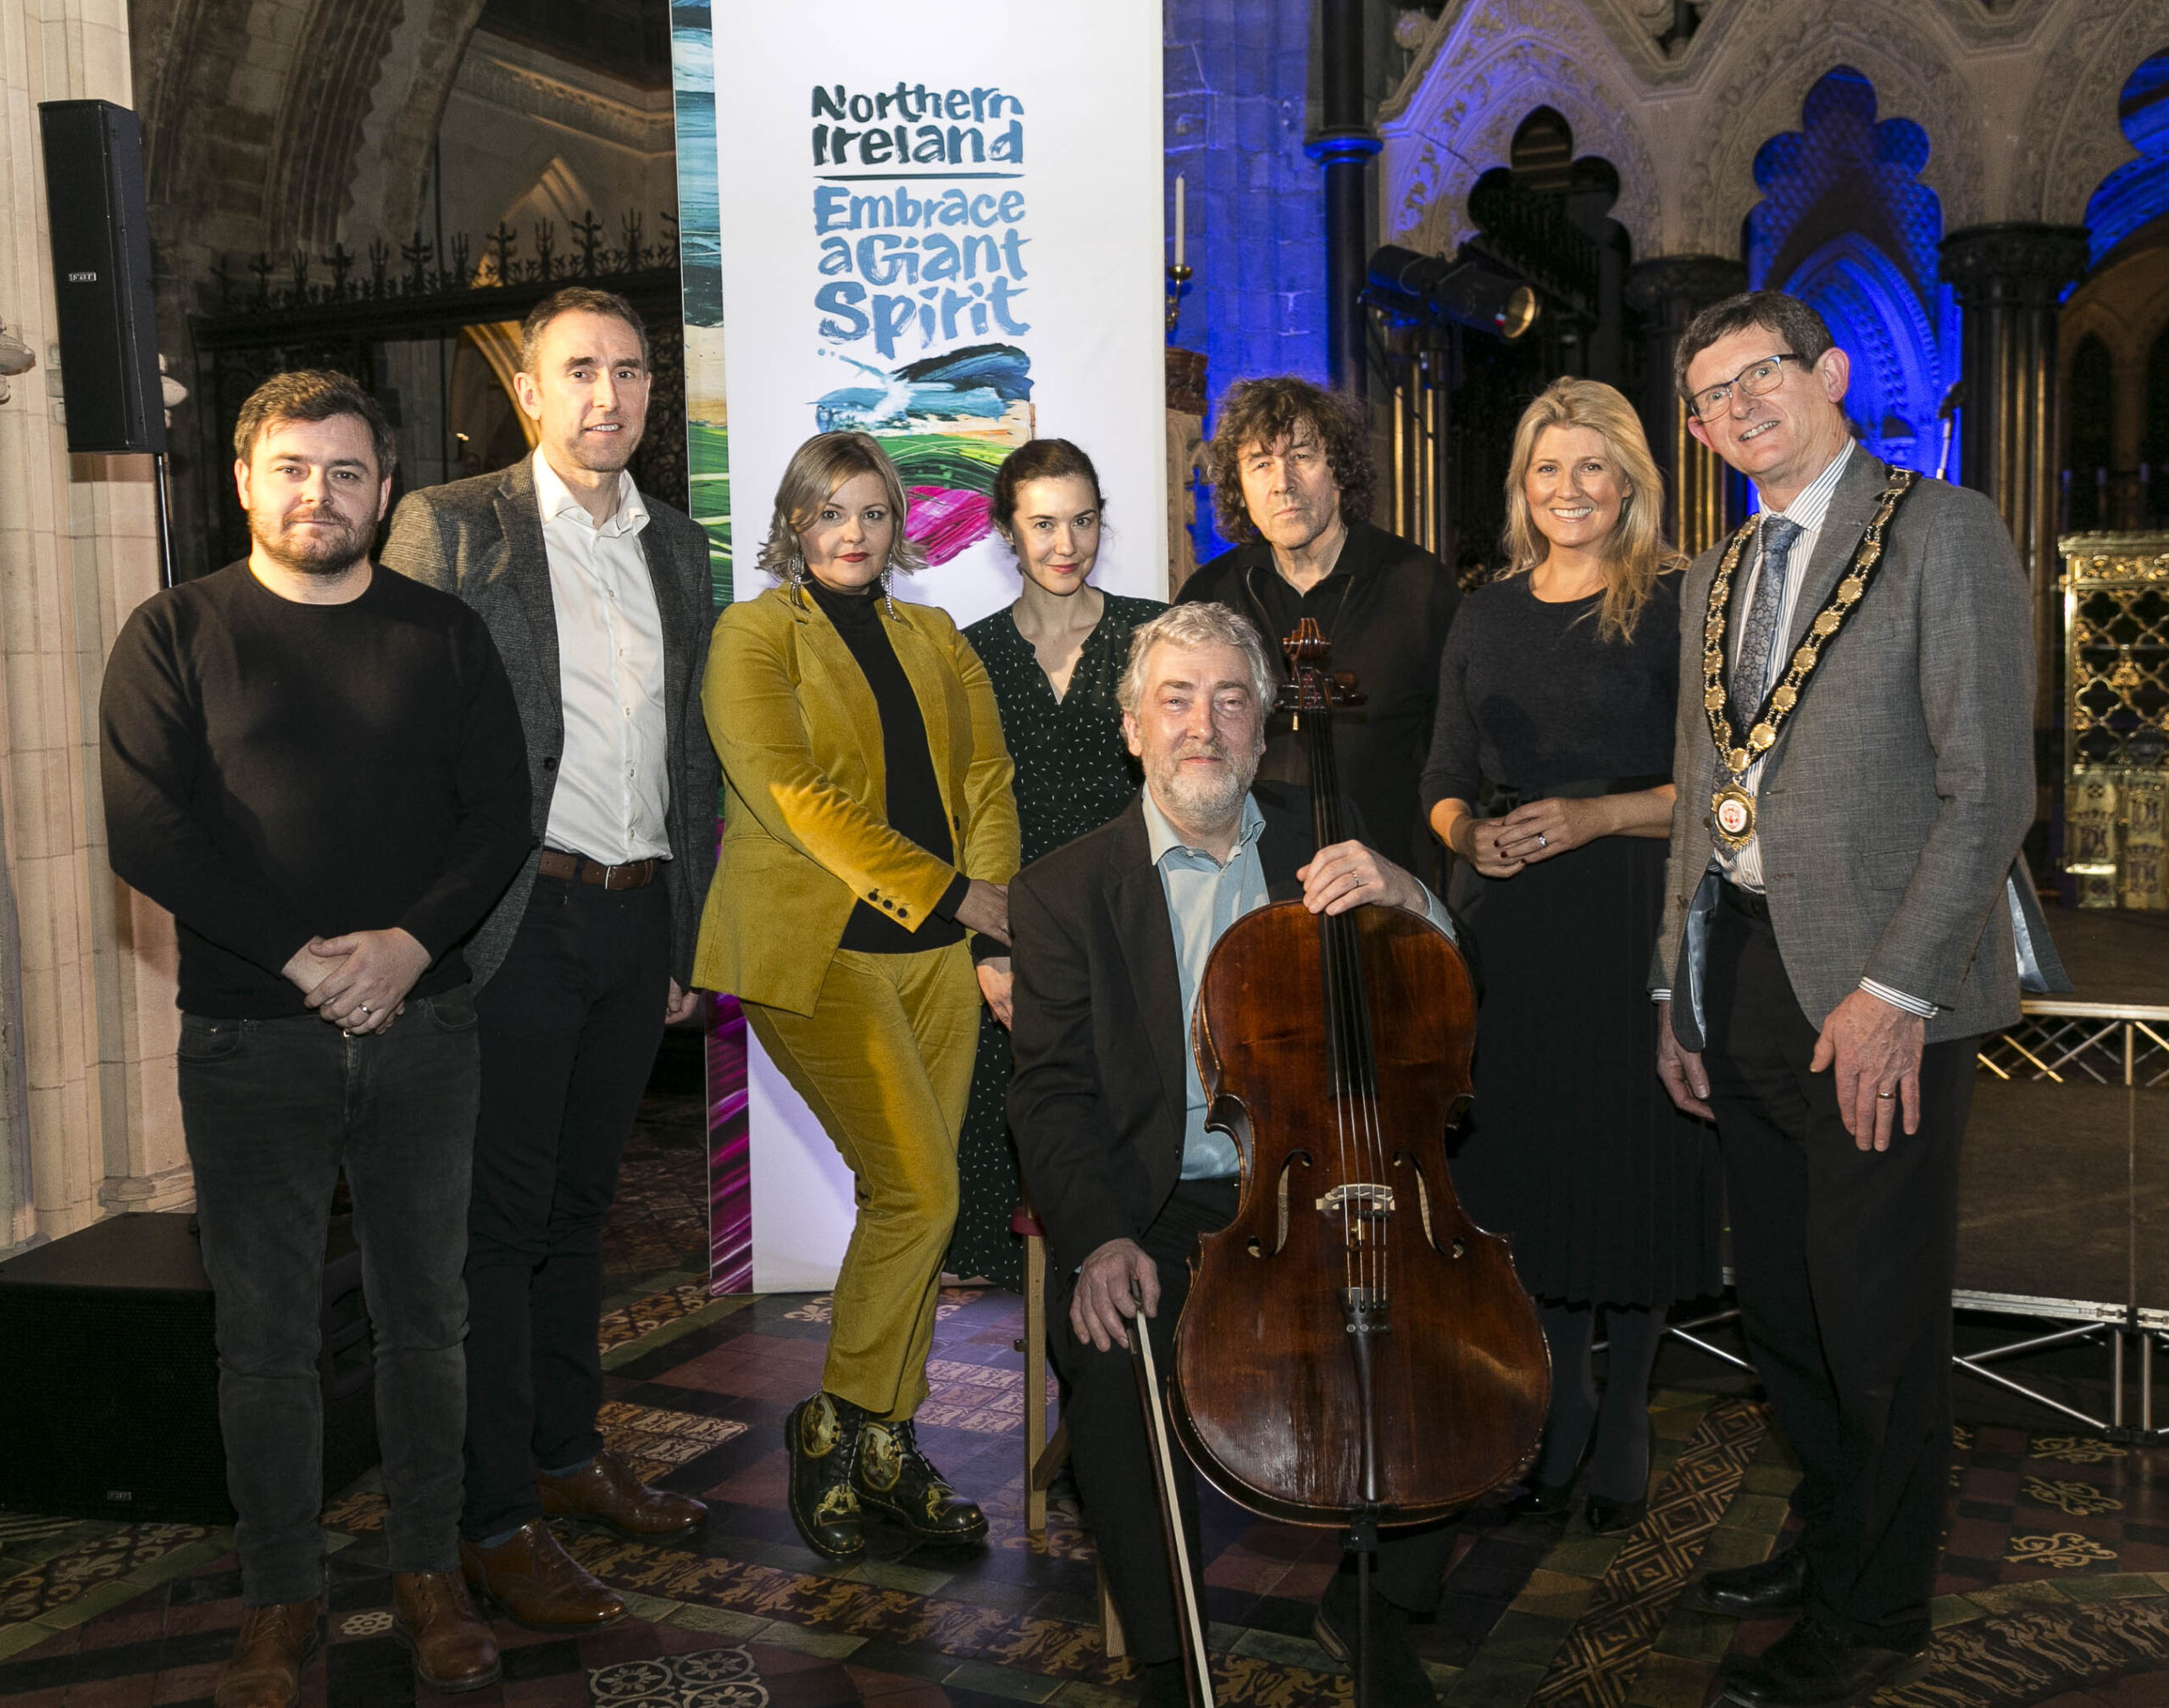 Performers from Stage & Screen Unite to Highlight Seamus Heaney HomePlace